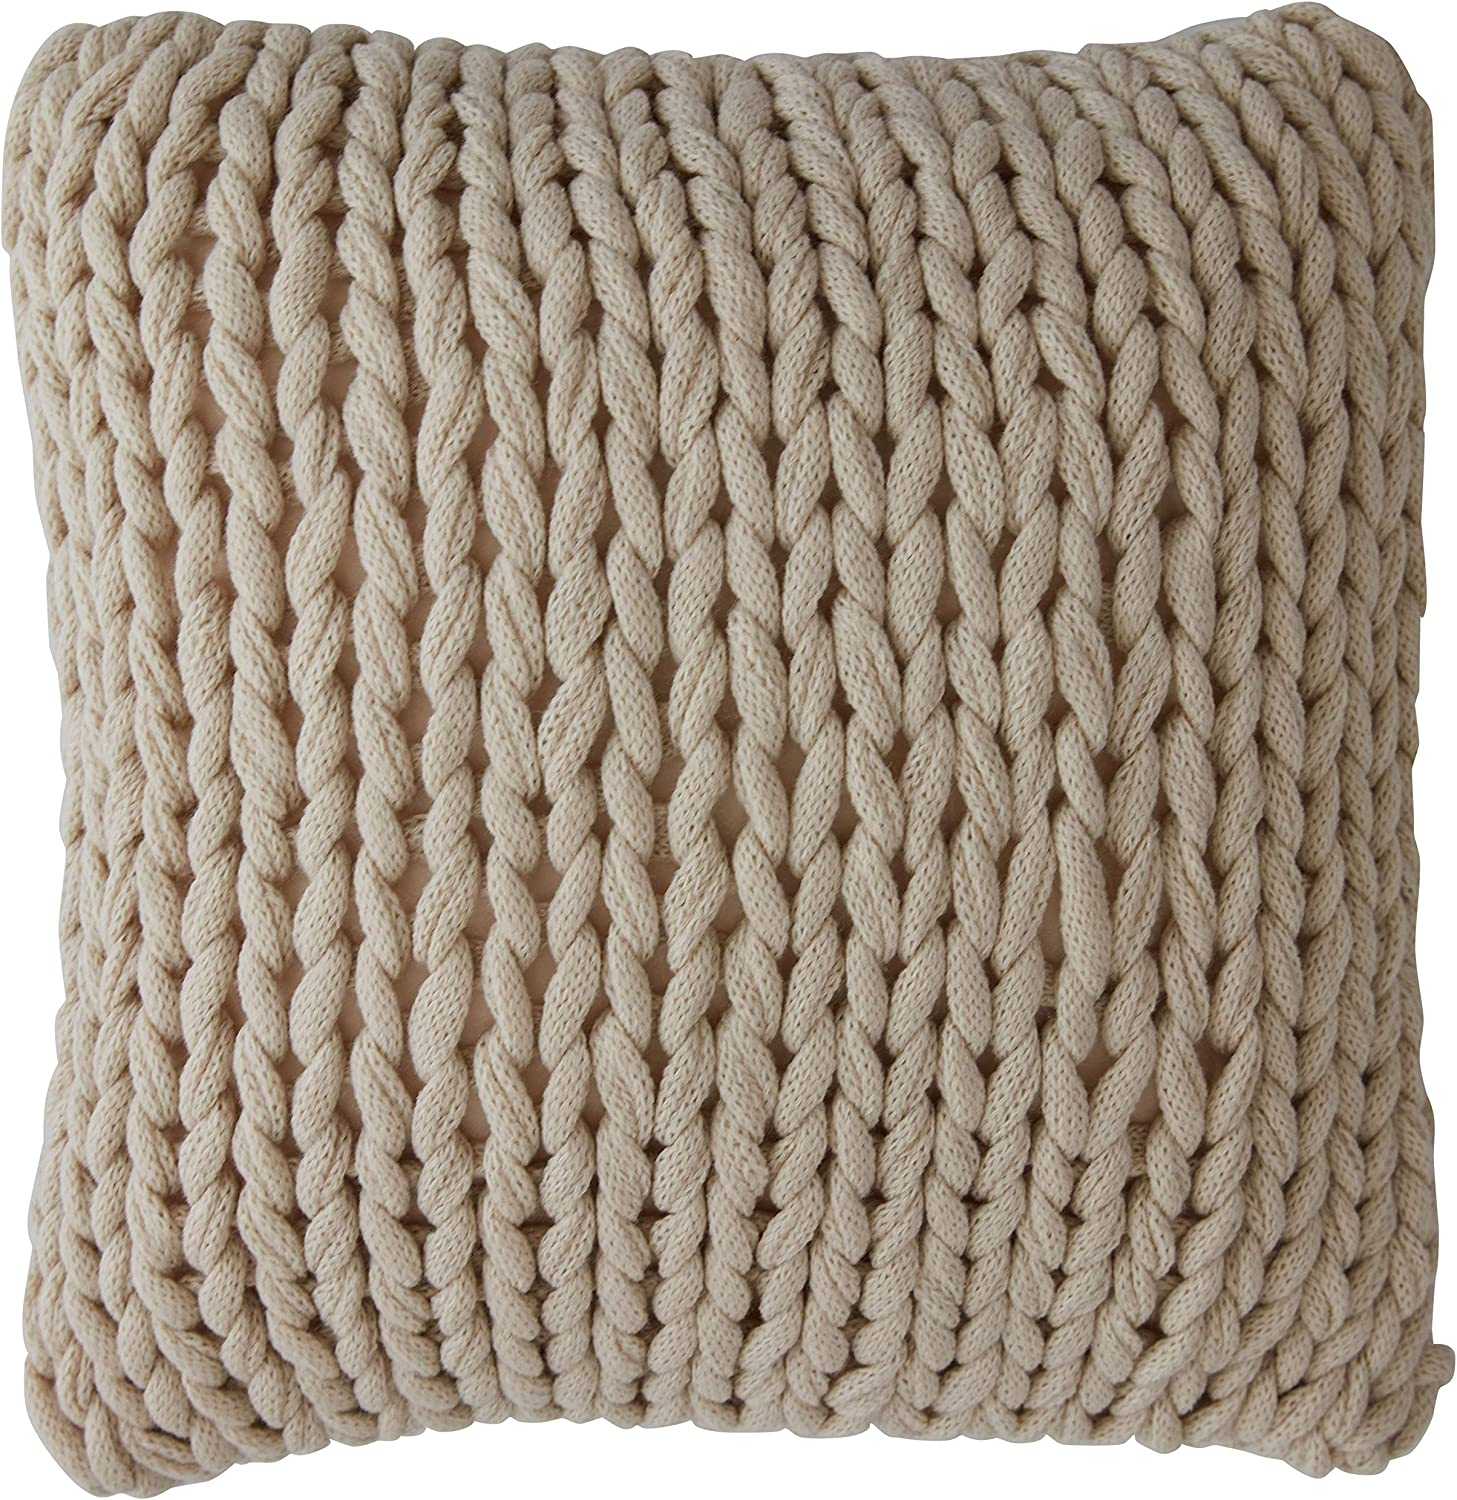 Cheer Collection Chunky Cable Knit Throw Pillow, 18